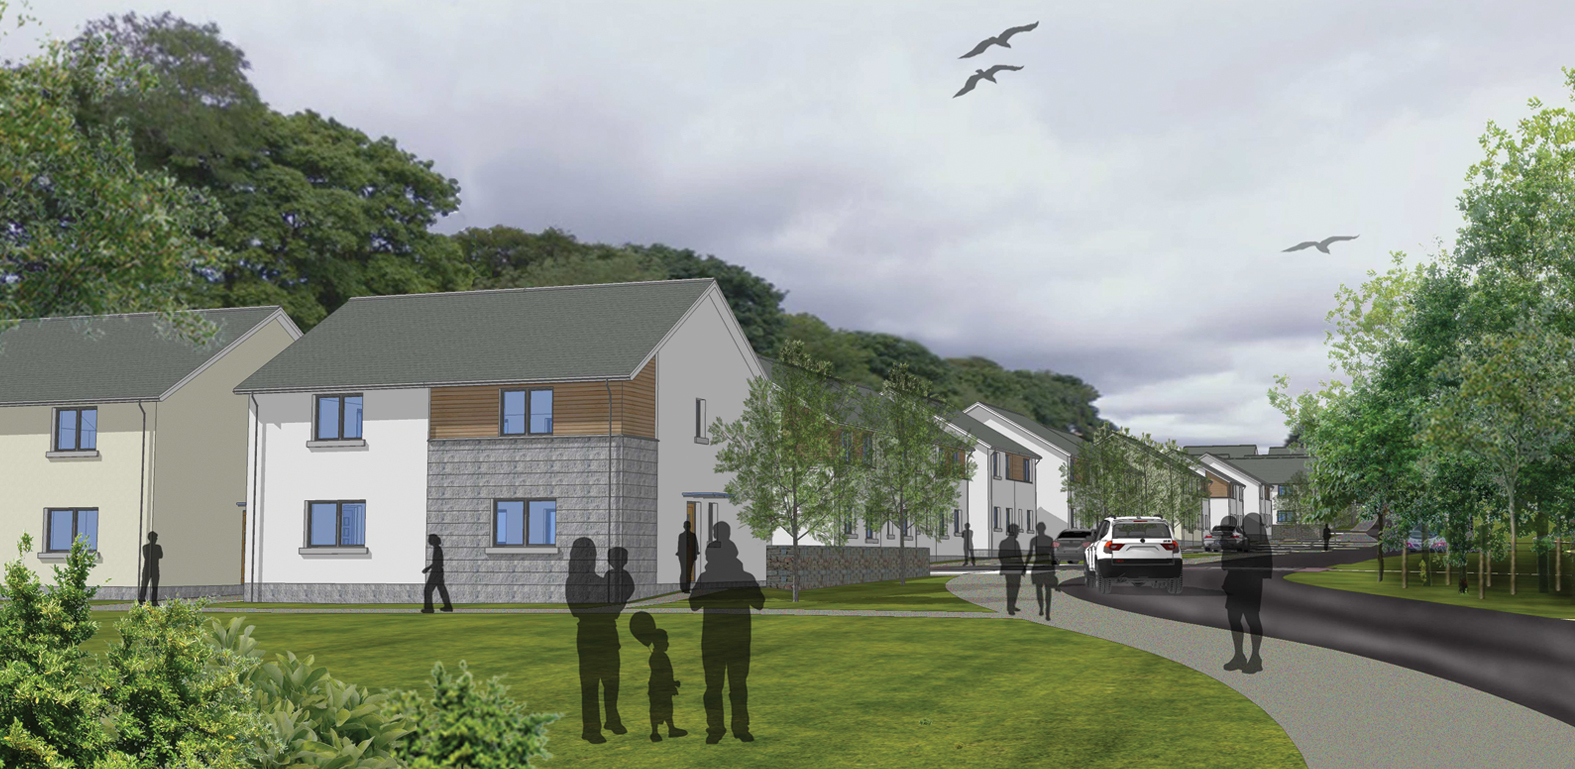 An artist's impression of the homes at Maidencraig.